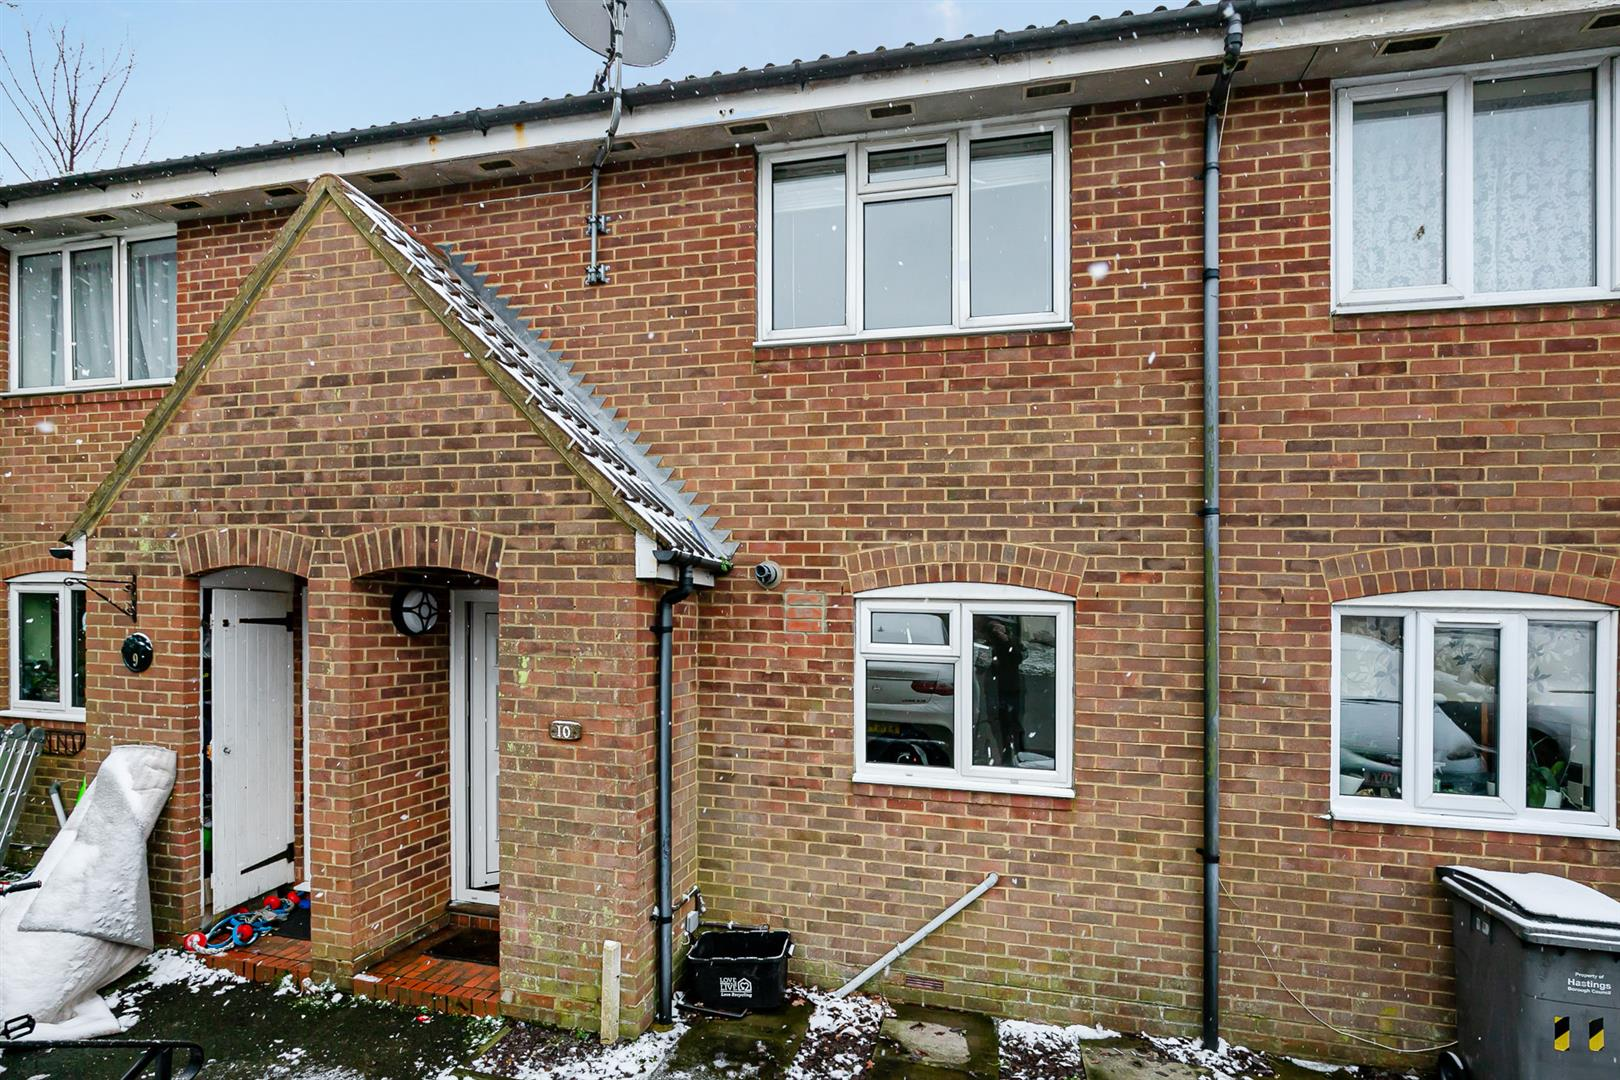 3 bed house for sale in St. Catherines Close, St. Leonards-On-Sea, TN37